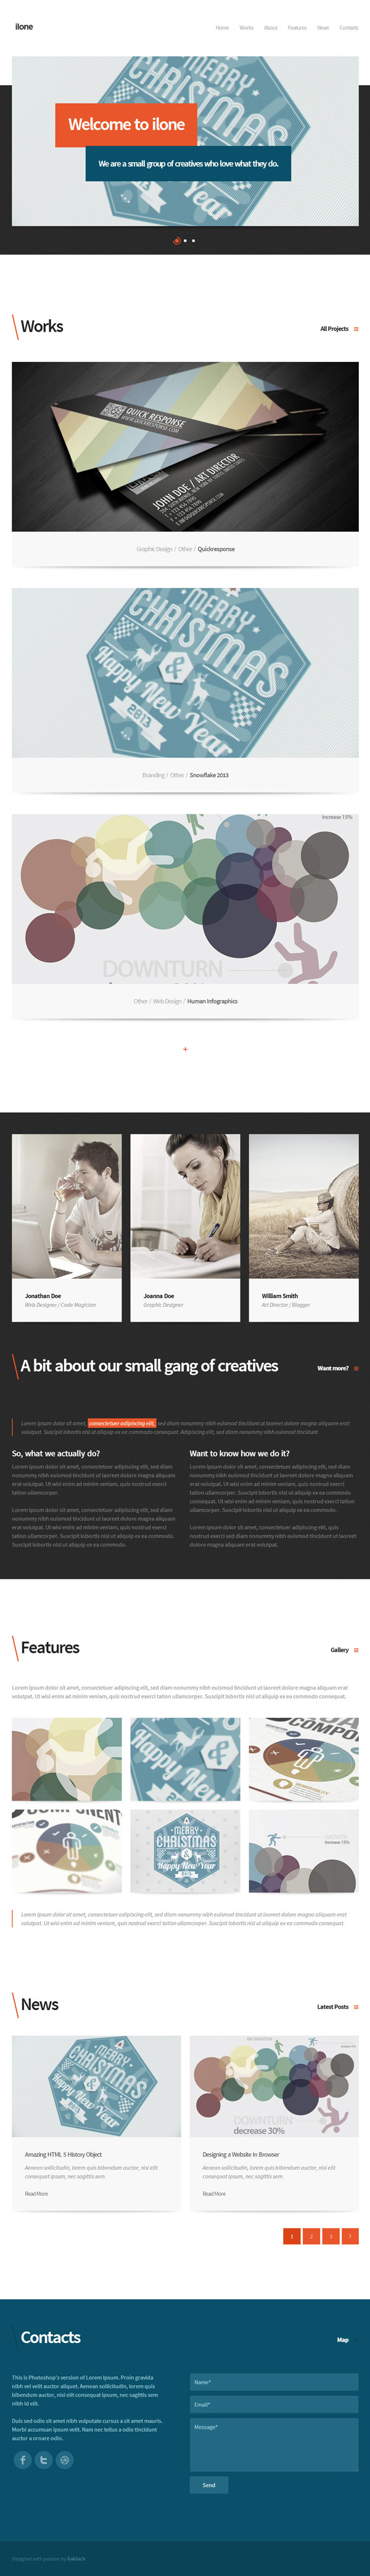 Ilone - One Page WordPress Theme